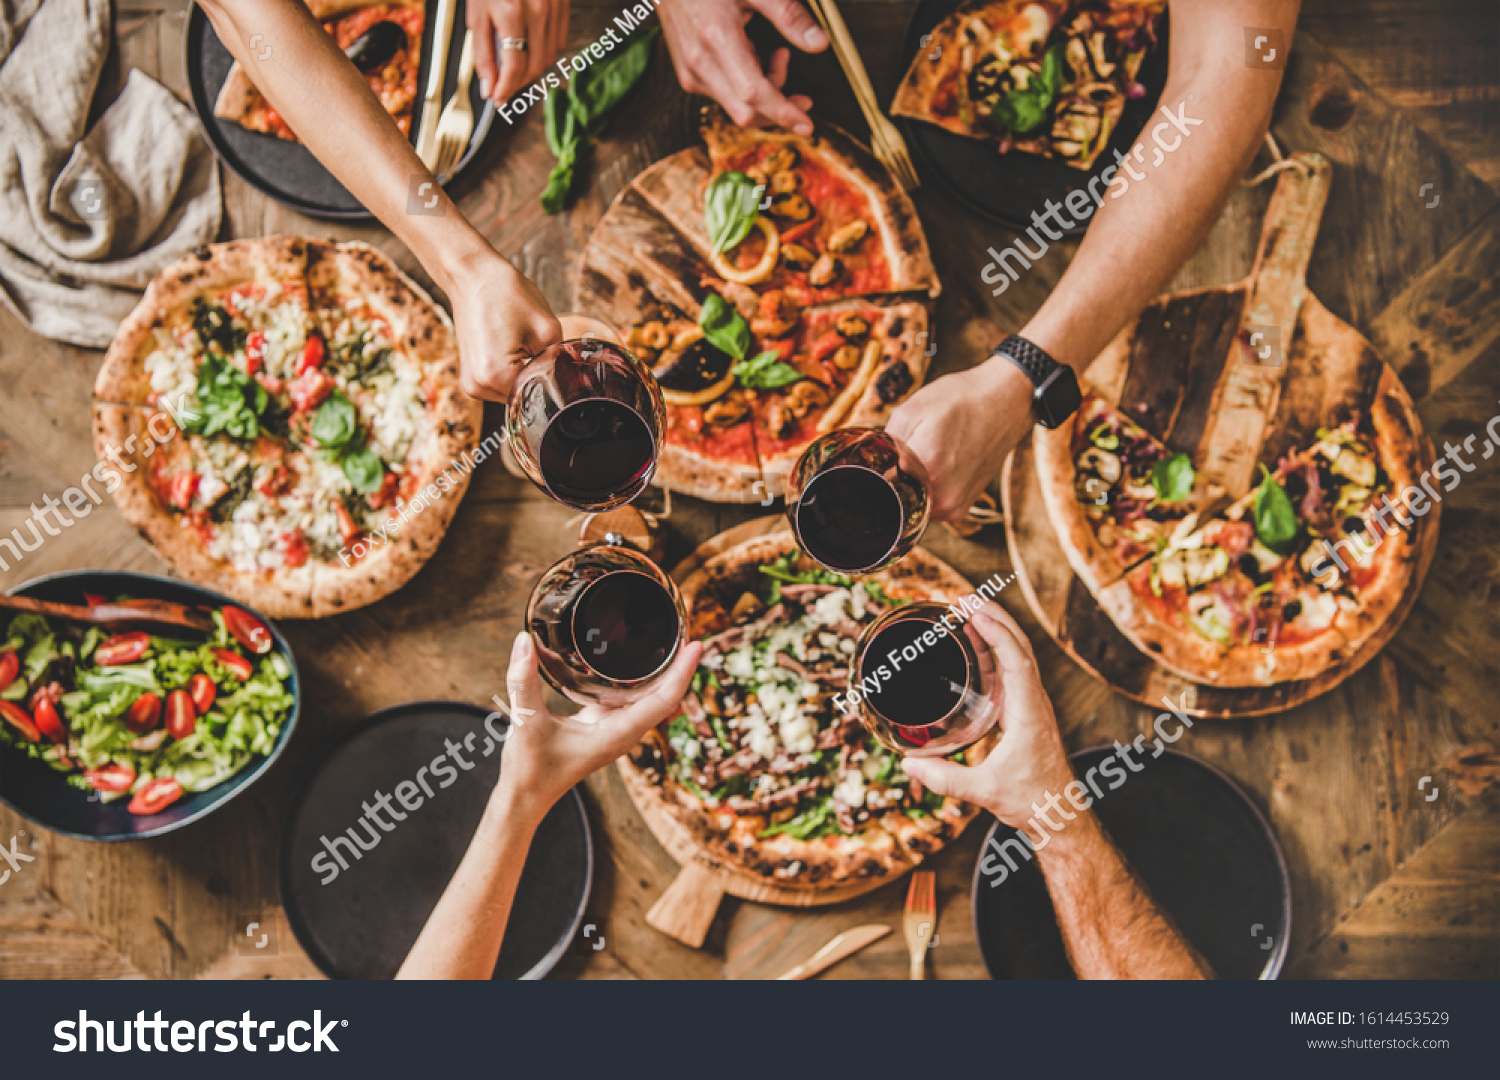 Family or friends having pizza party dinner. Flat-lay of people clinking glasses with red wine over rustic wooden table with various kinds of Italian pizza, top view. Fast food lunch, celebration #1614453529